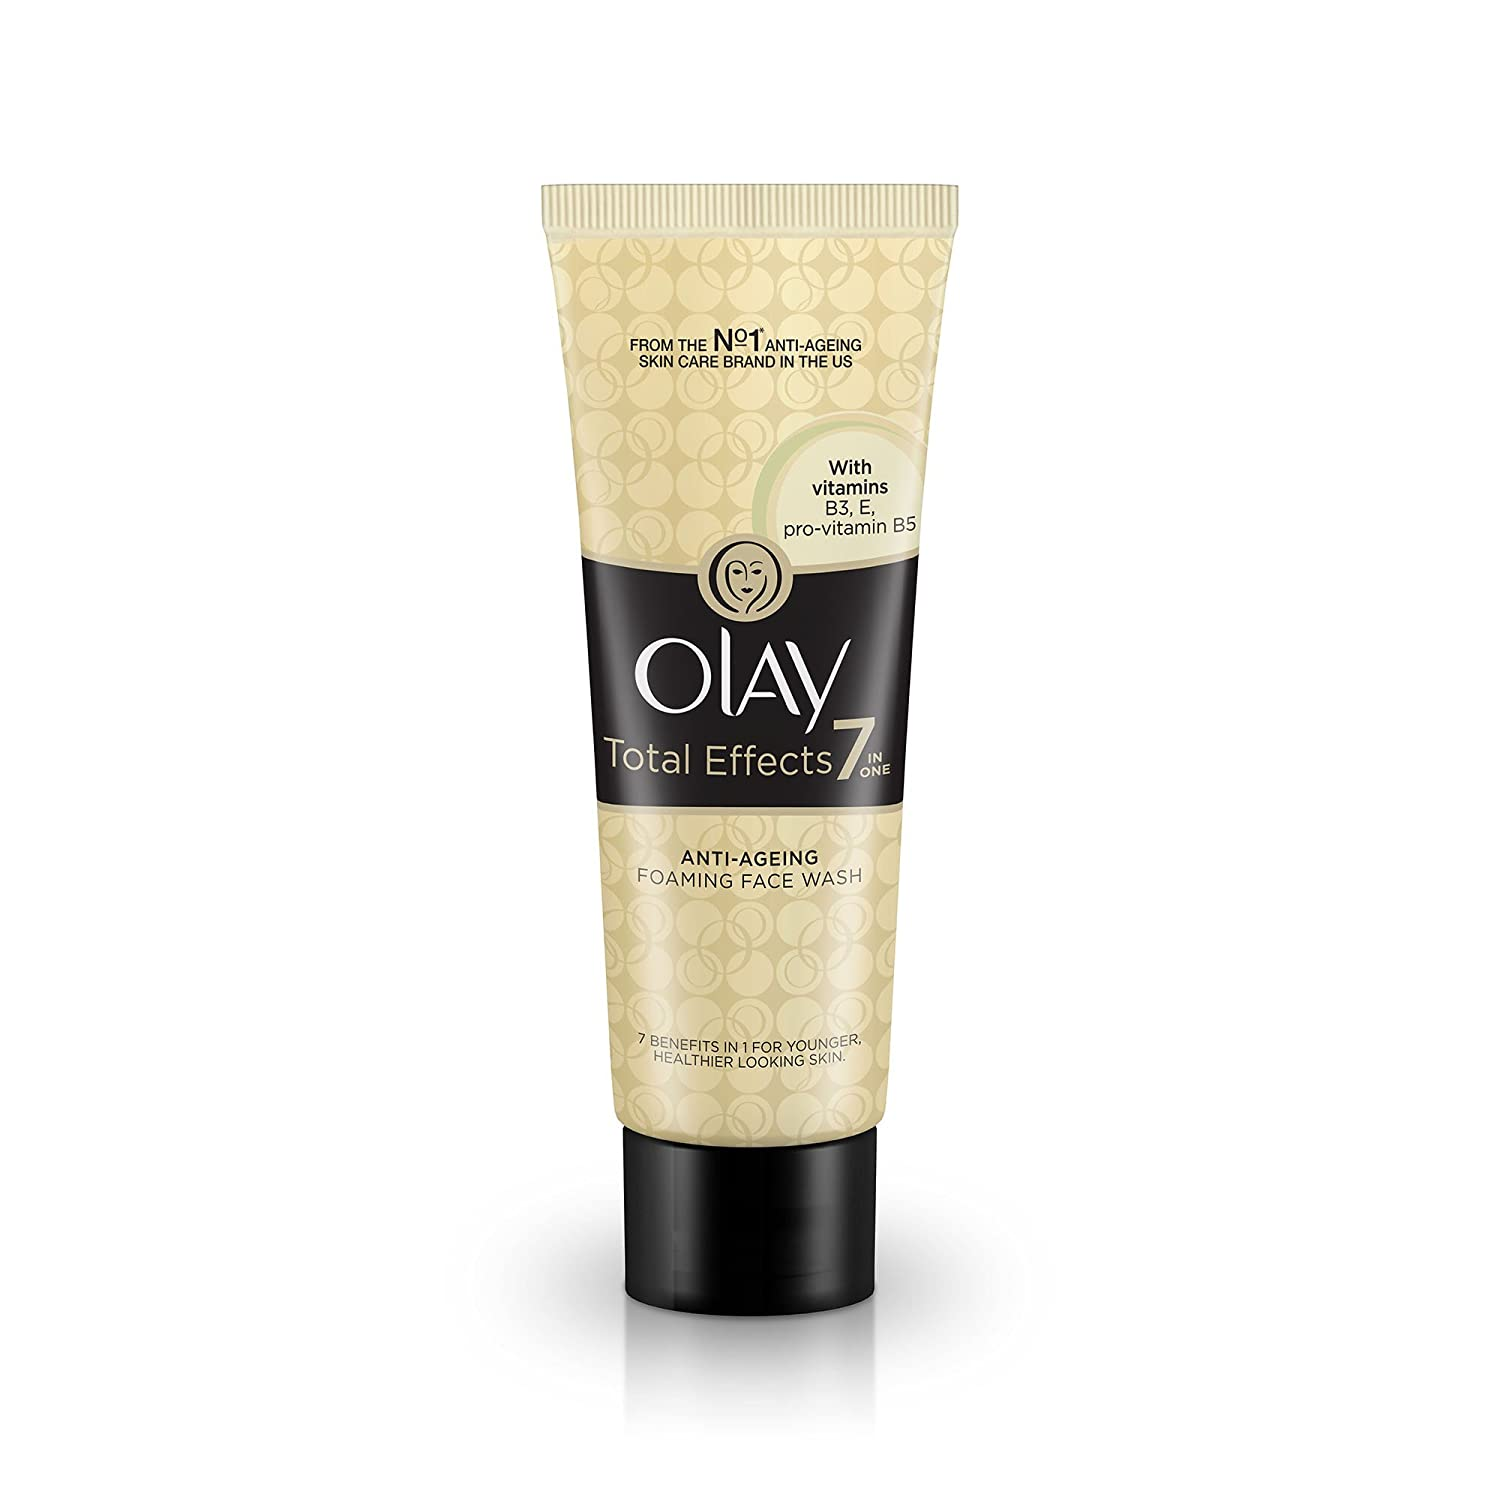 Olay Total Effects 7 In One Anti- Ageing Foaming Face Wash 100gm by Olay Procter and Gamble